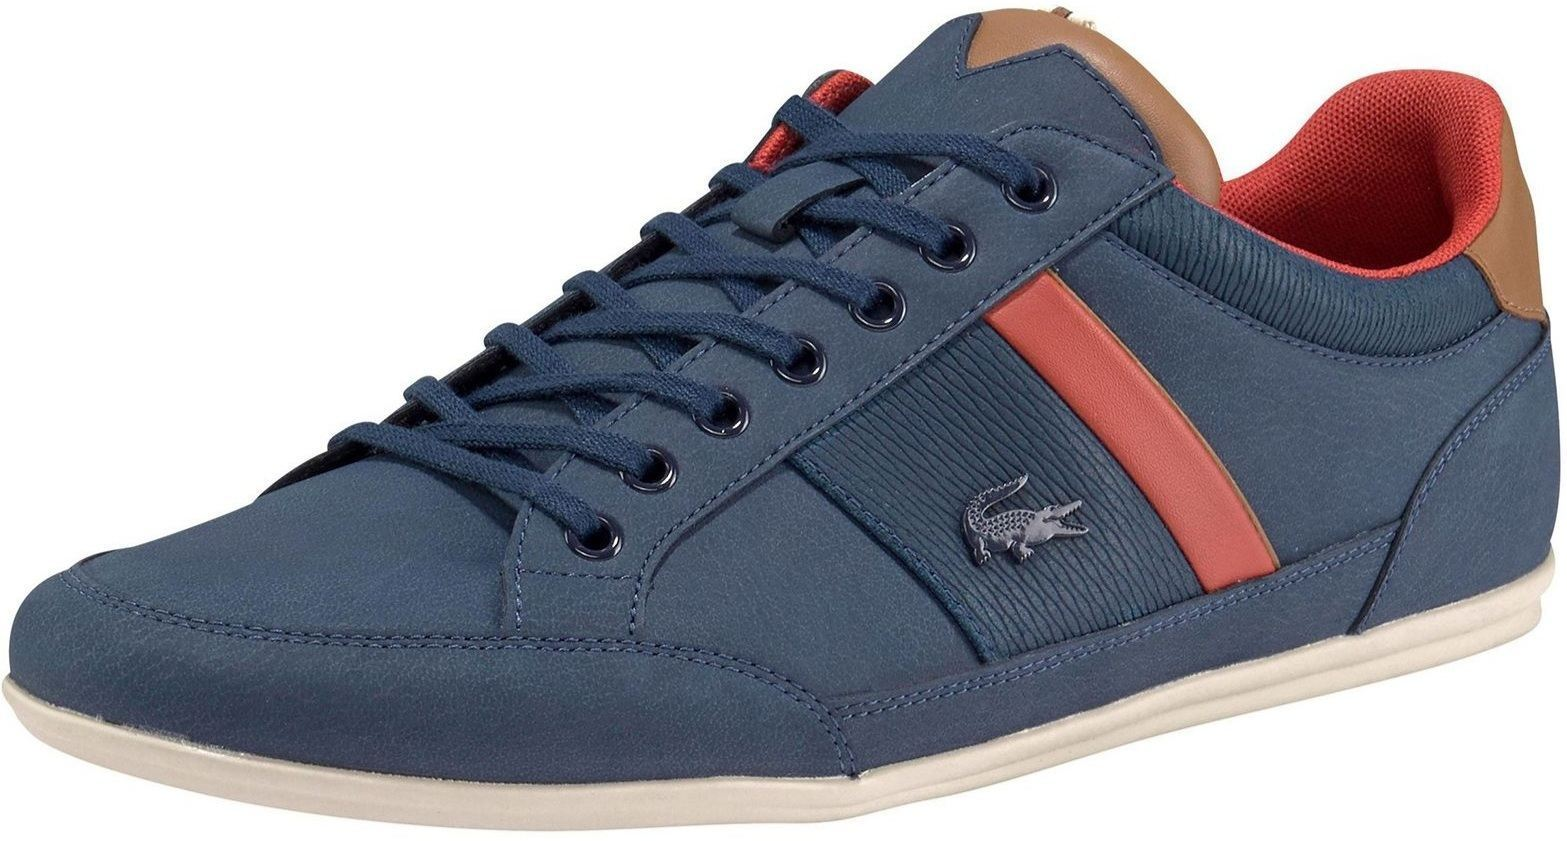 0485c0399 Lacoste Chaymon 318 Navy Brown Leather Mens Trainers Shoes Quick View